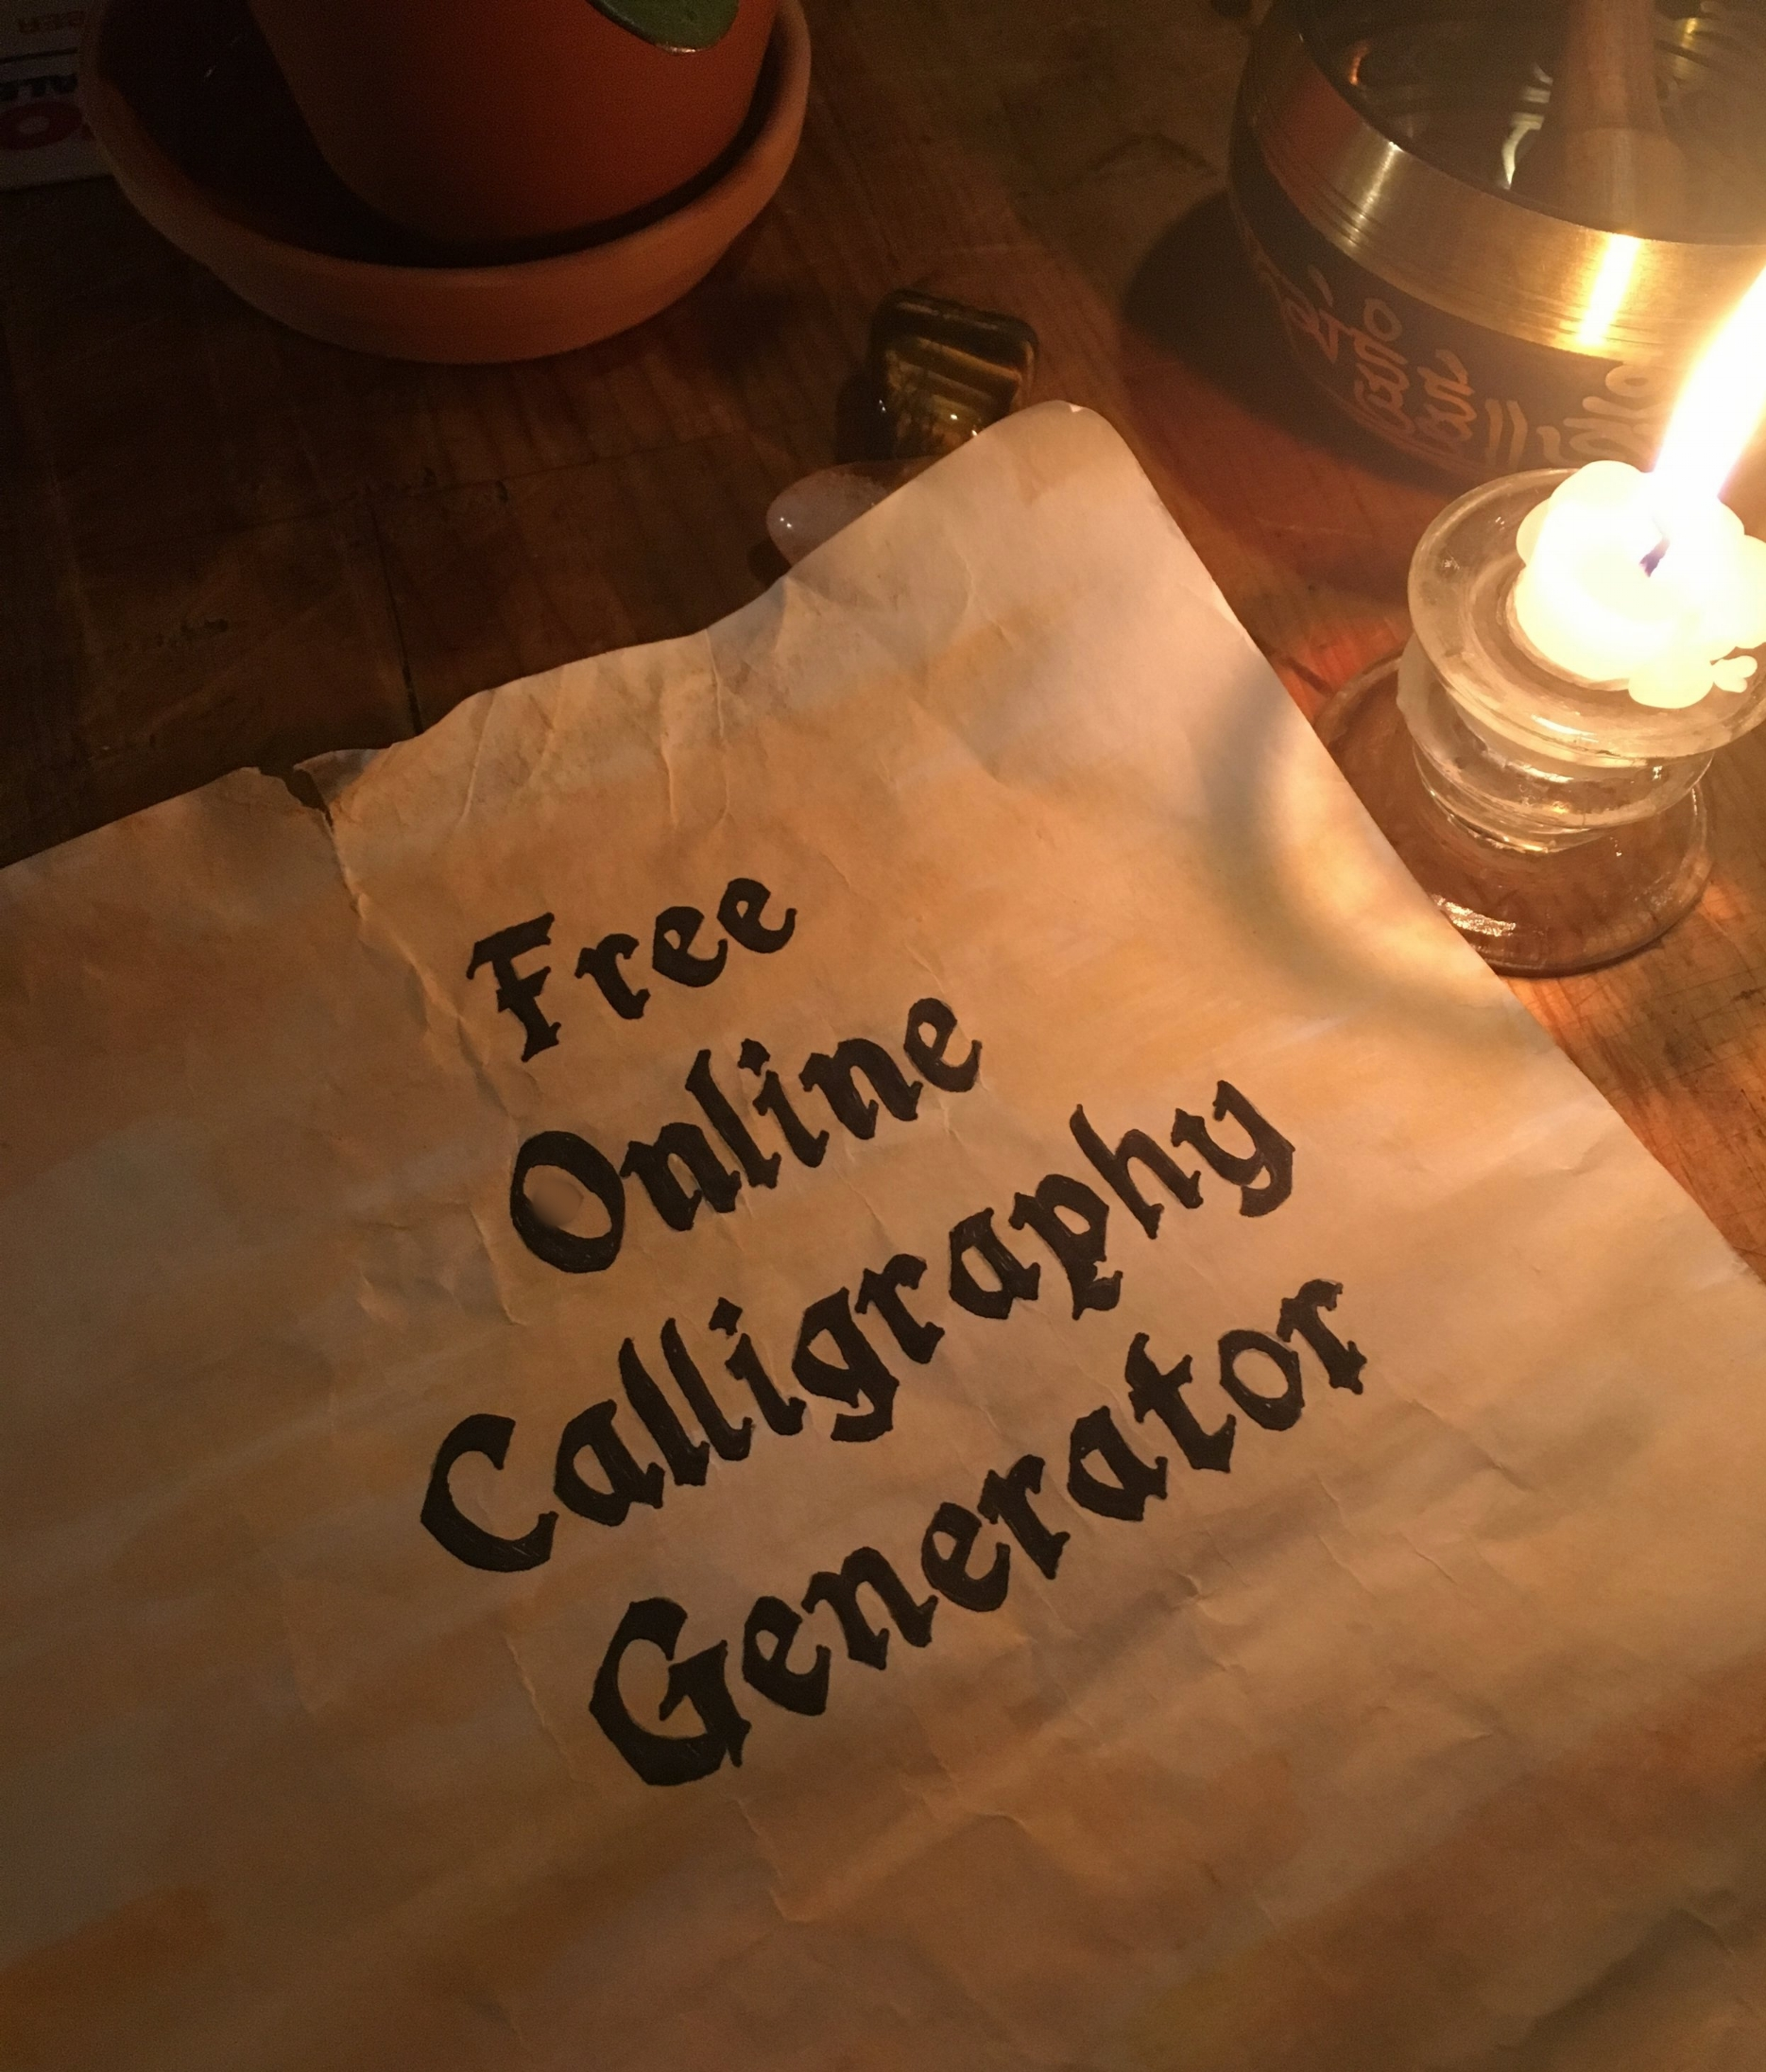 Calligraphy Input Online Free Online Calligraphy Generator Windows Mac Ipad Arts